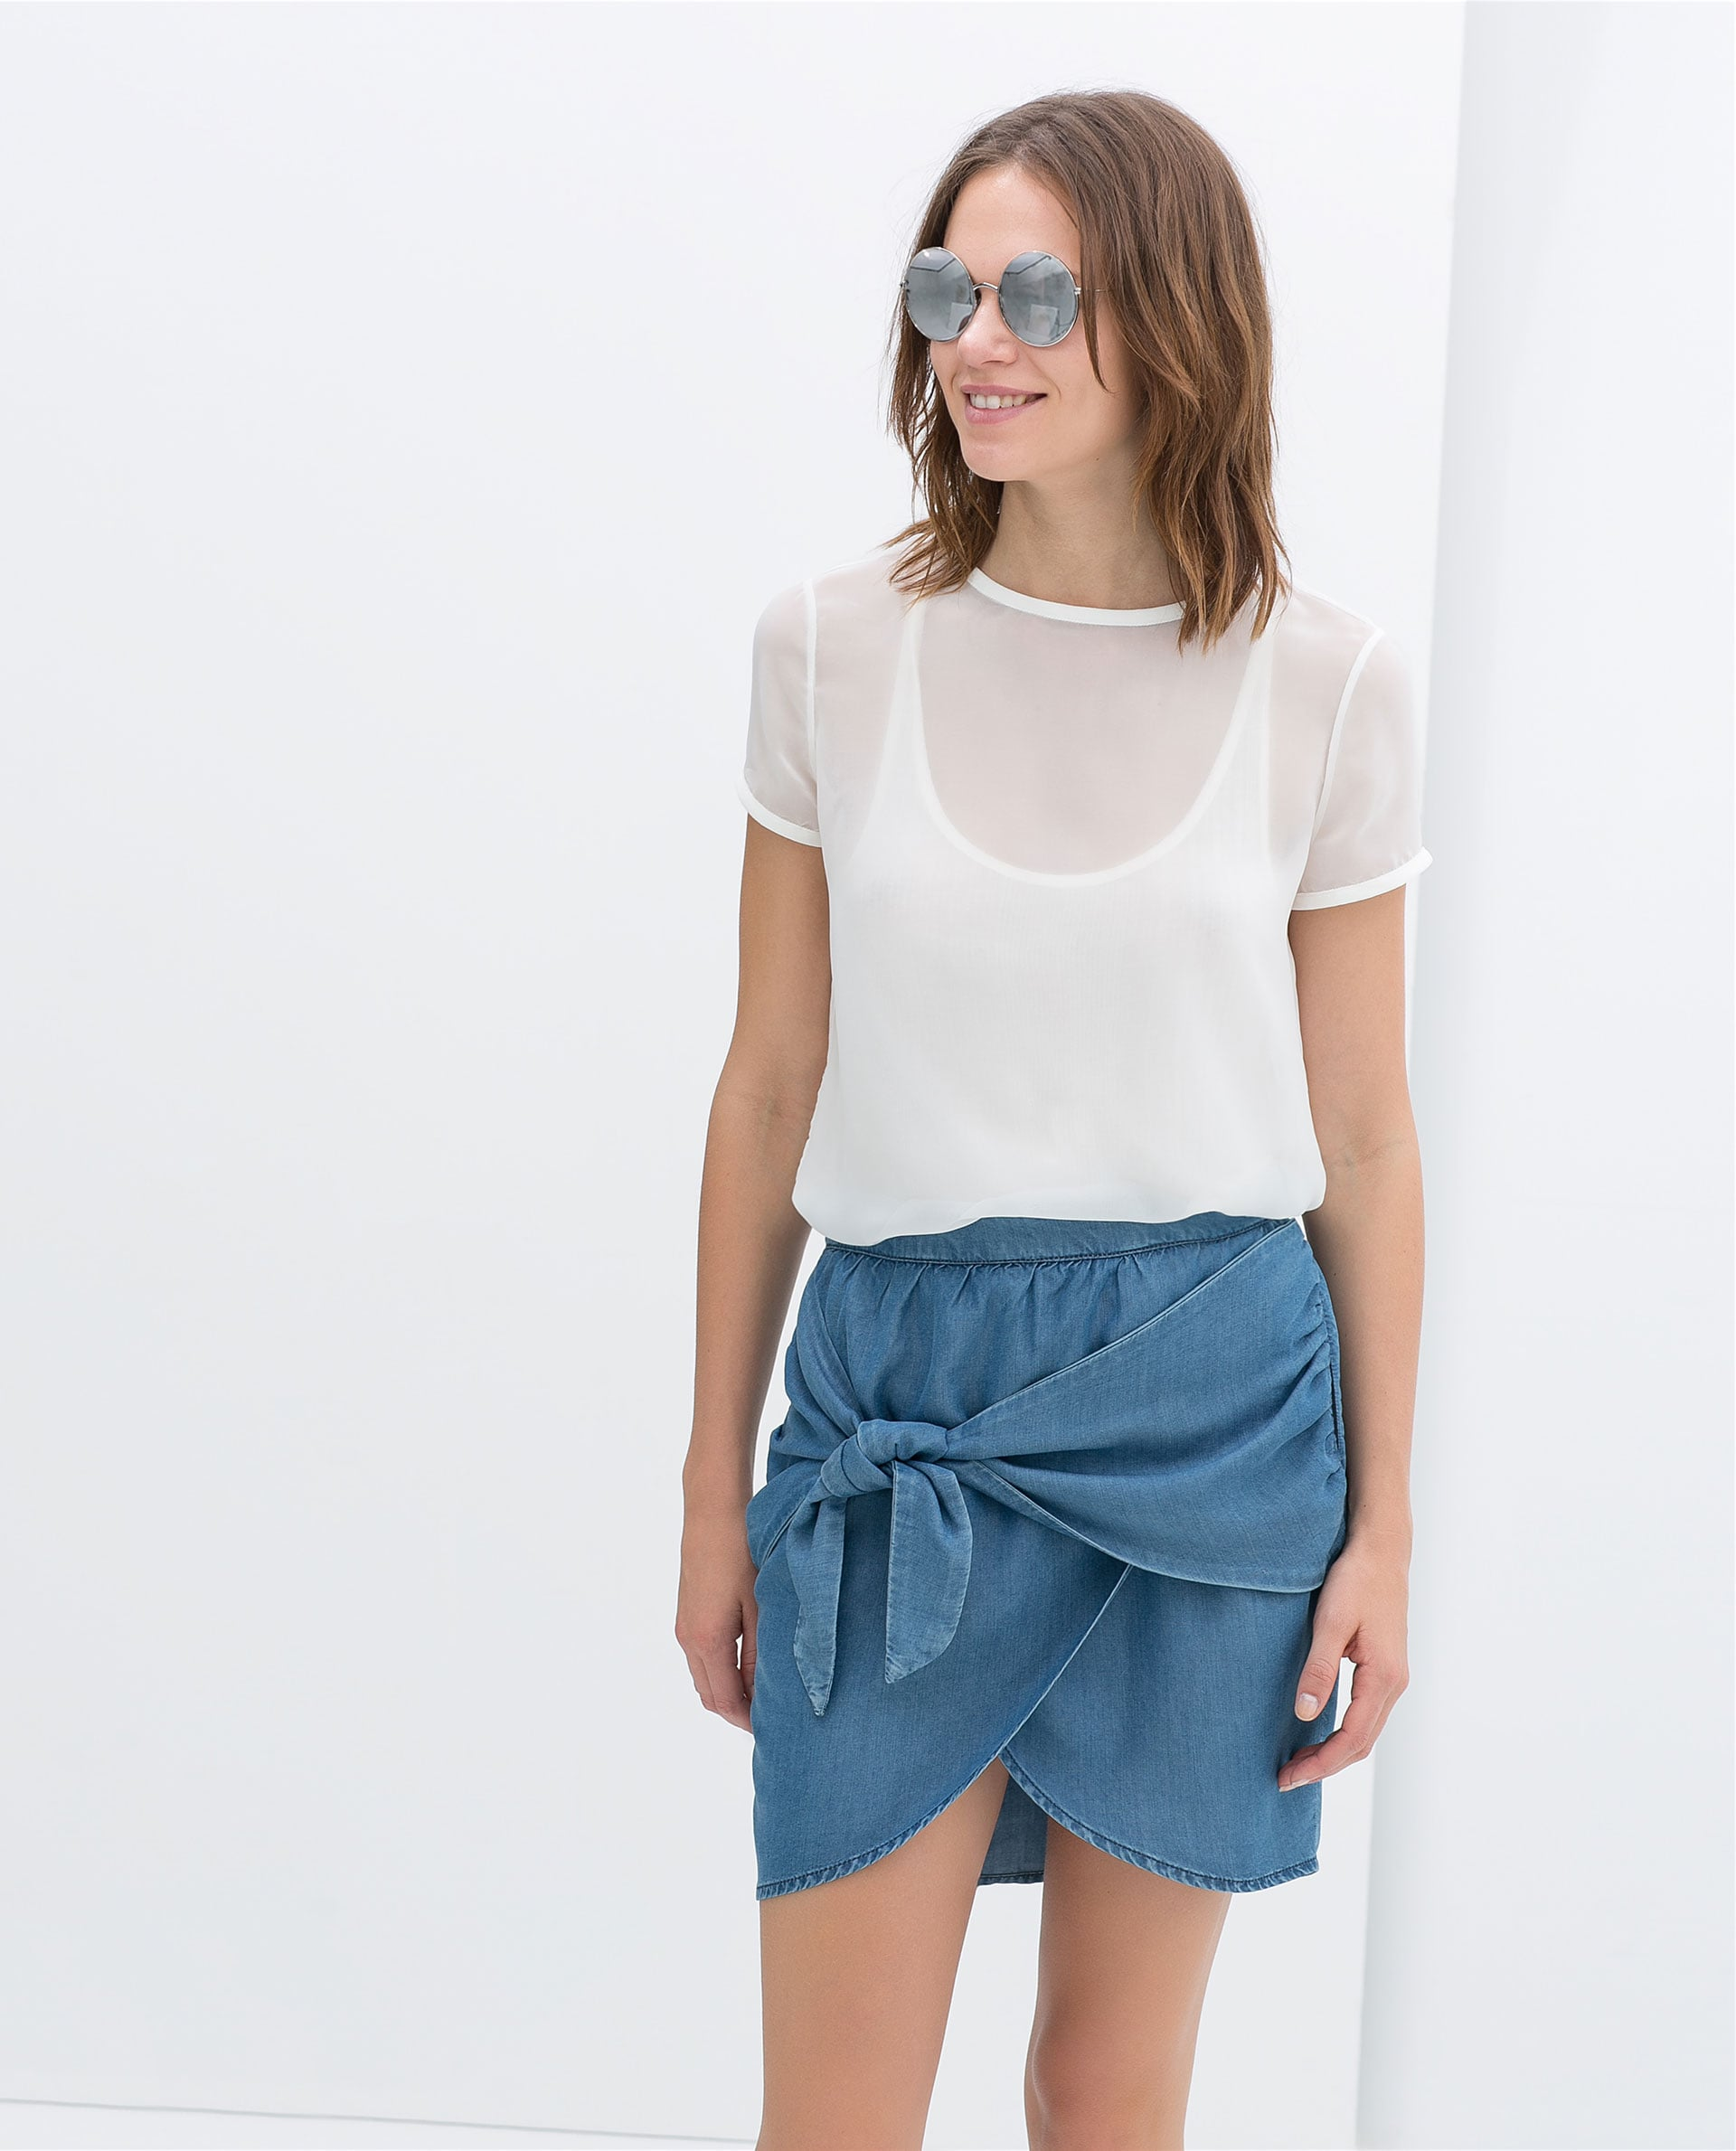 Crossover Skirt With Bow ($40)